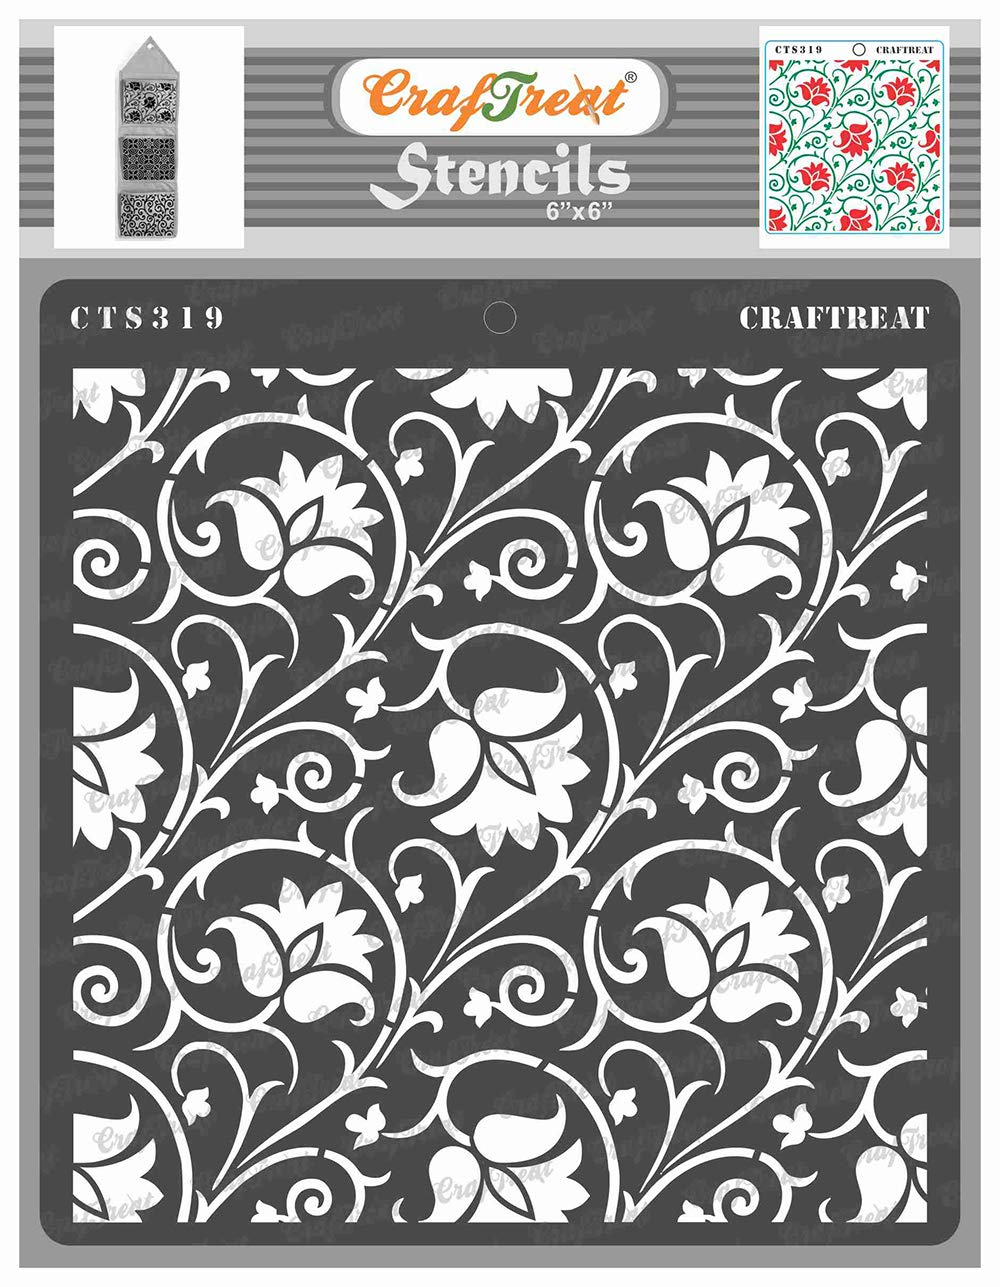 CrafTreat Floral Pattern Stencils for Painting on Wood, Wall, Tile, Canvas, Paper, Fabric and Floor - Arabesque Stencil - 6x6 Inches - Reusable DIY Art and Craft Stencils Patterns for Painting